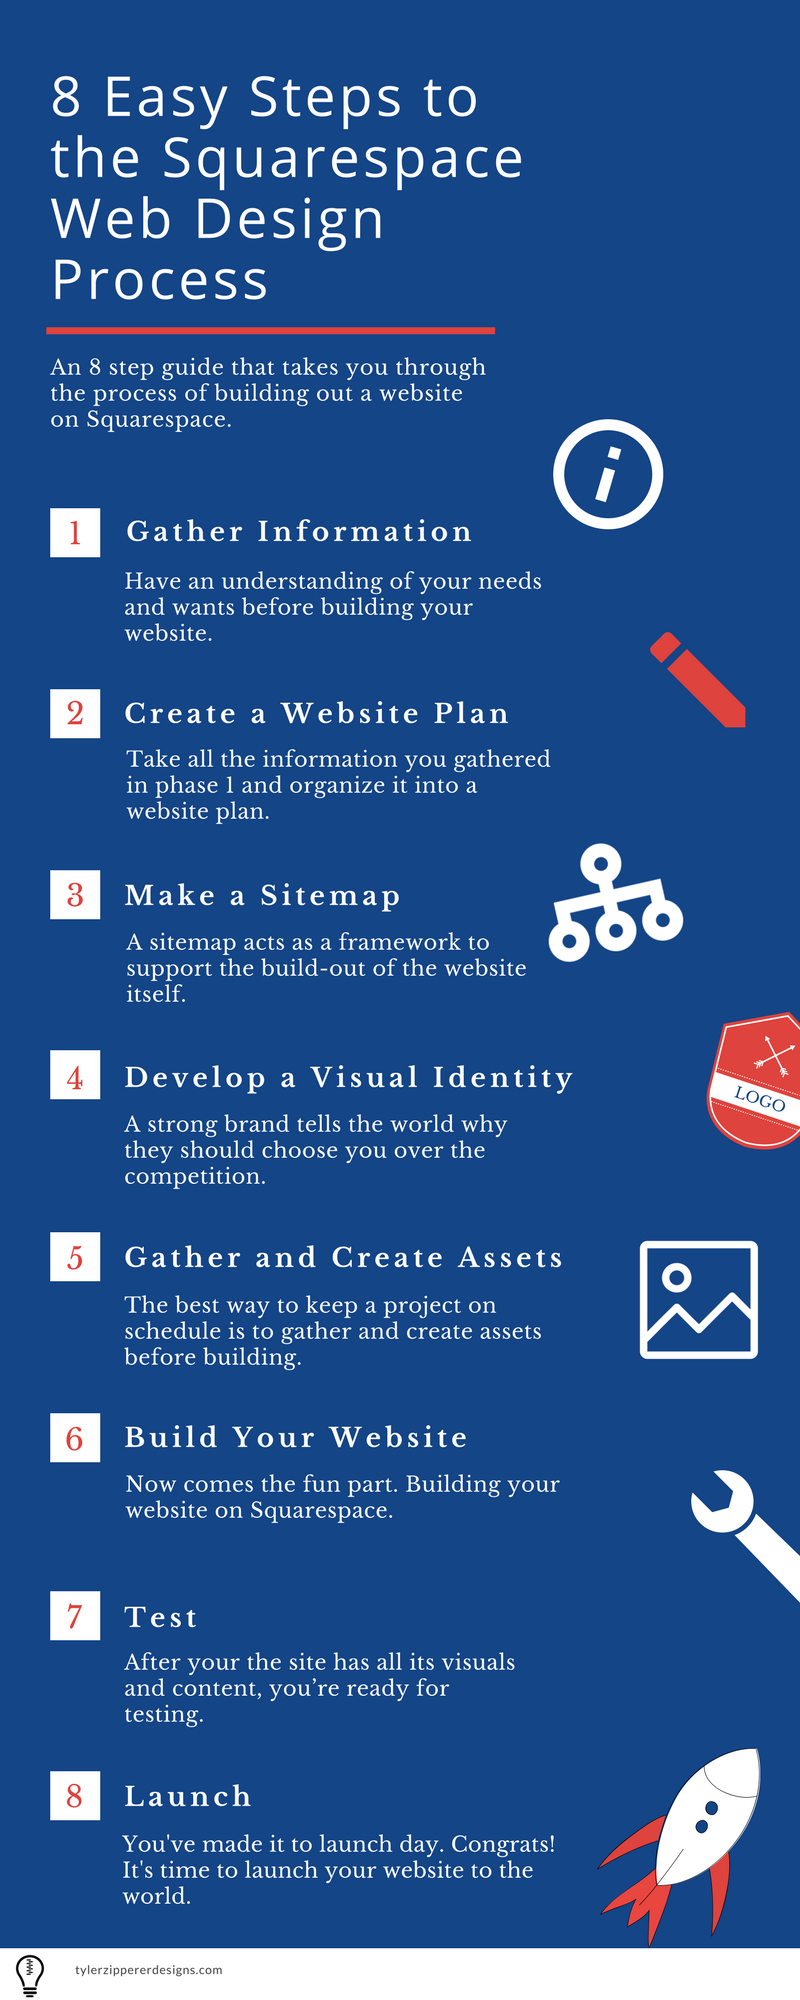 8 Steps to the Squarespace Web Design Process Infographic